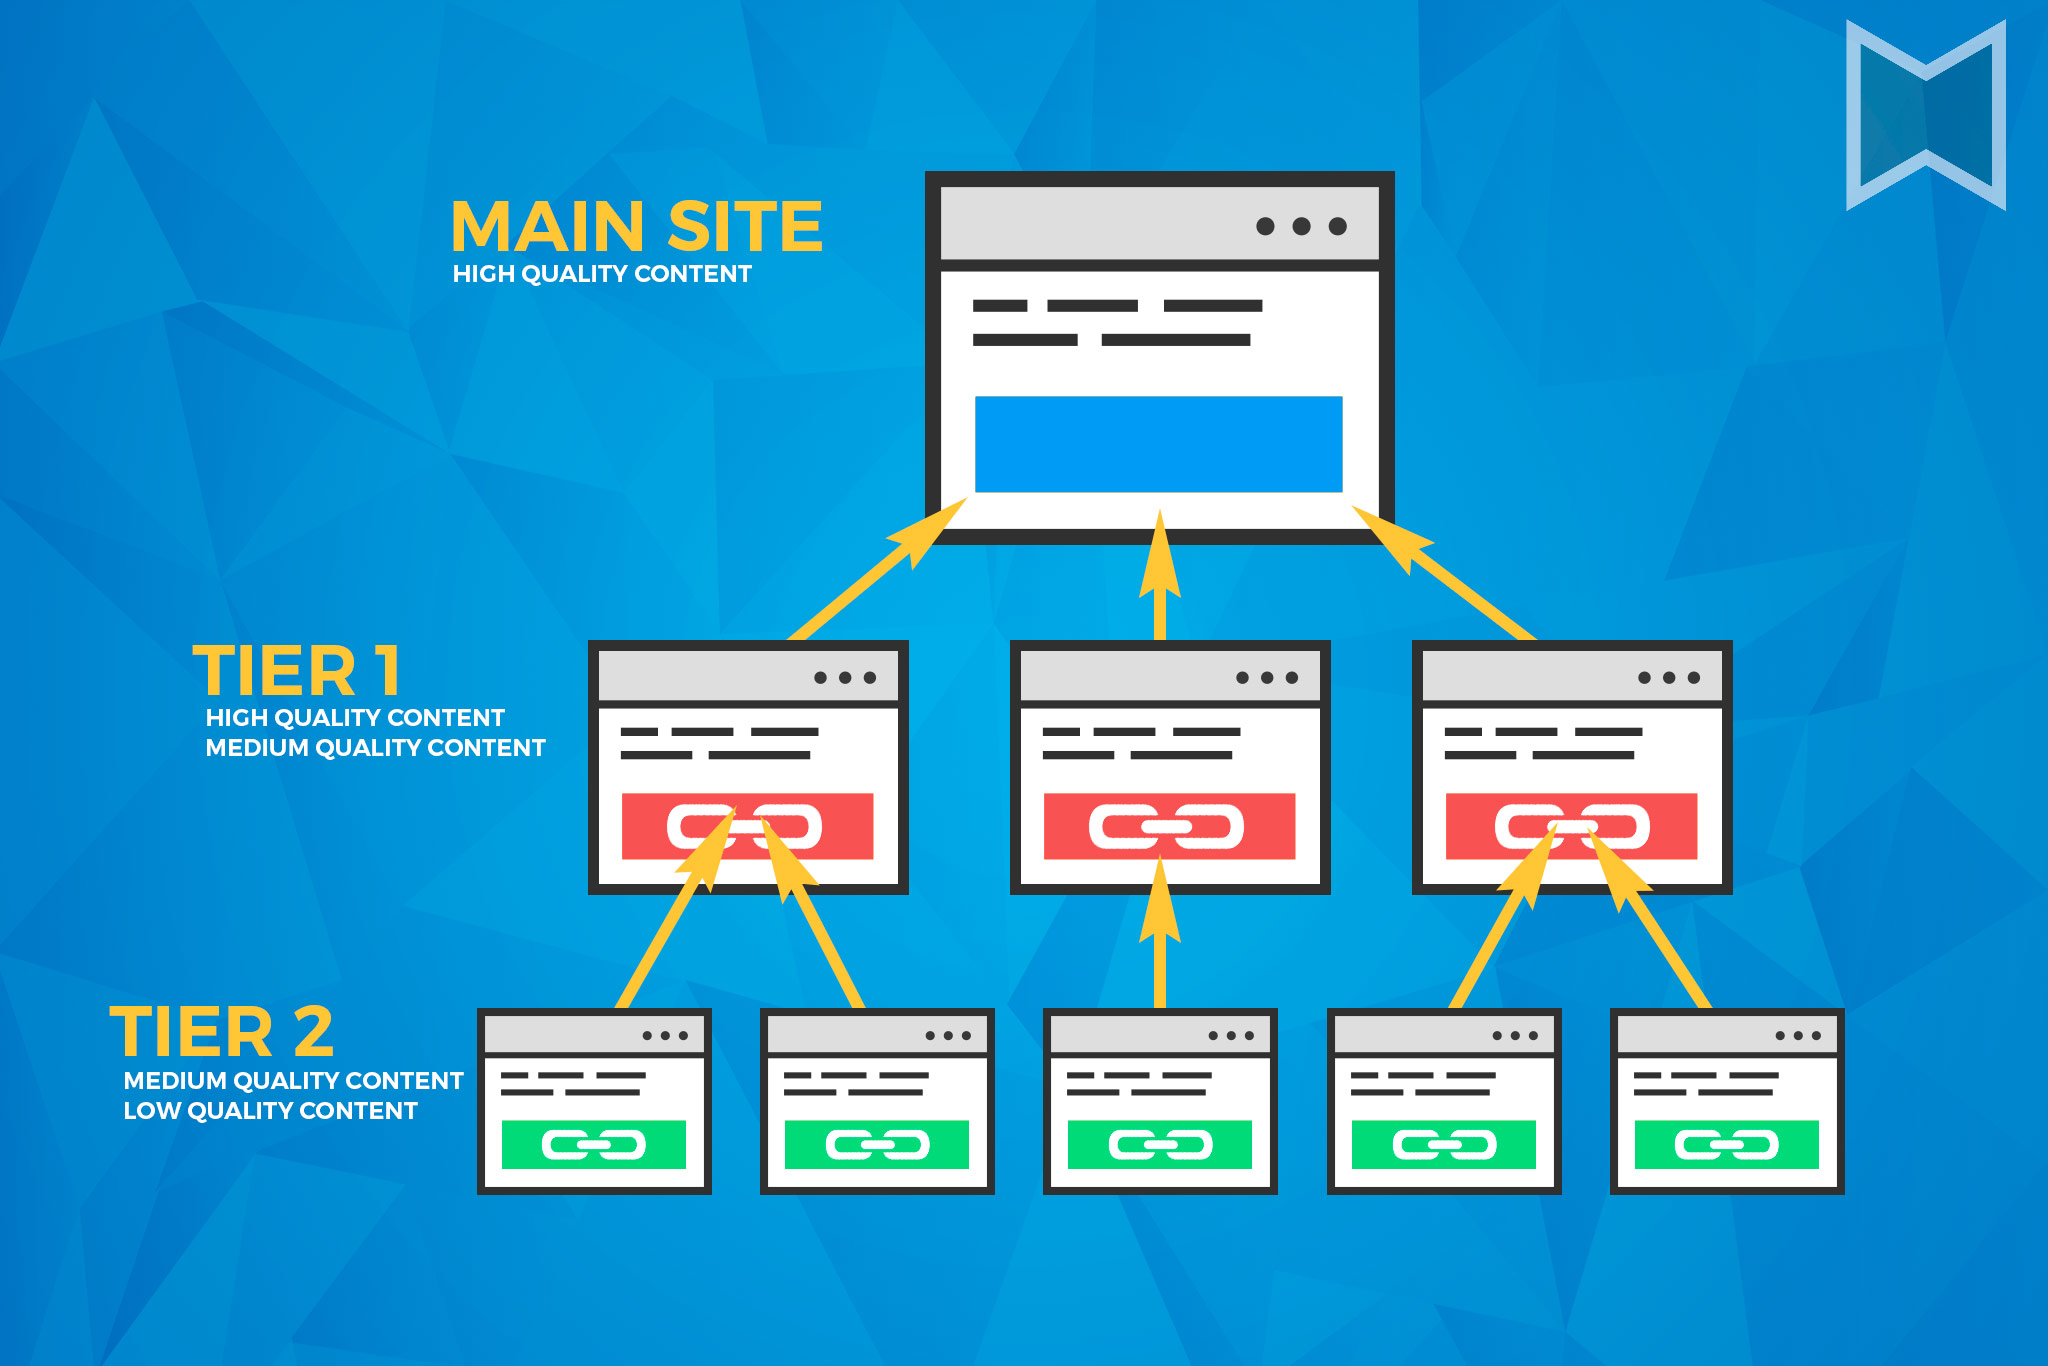 Provide 3 Tiered Link Pyramids of backlinks